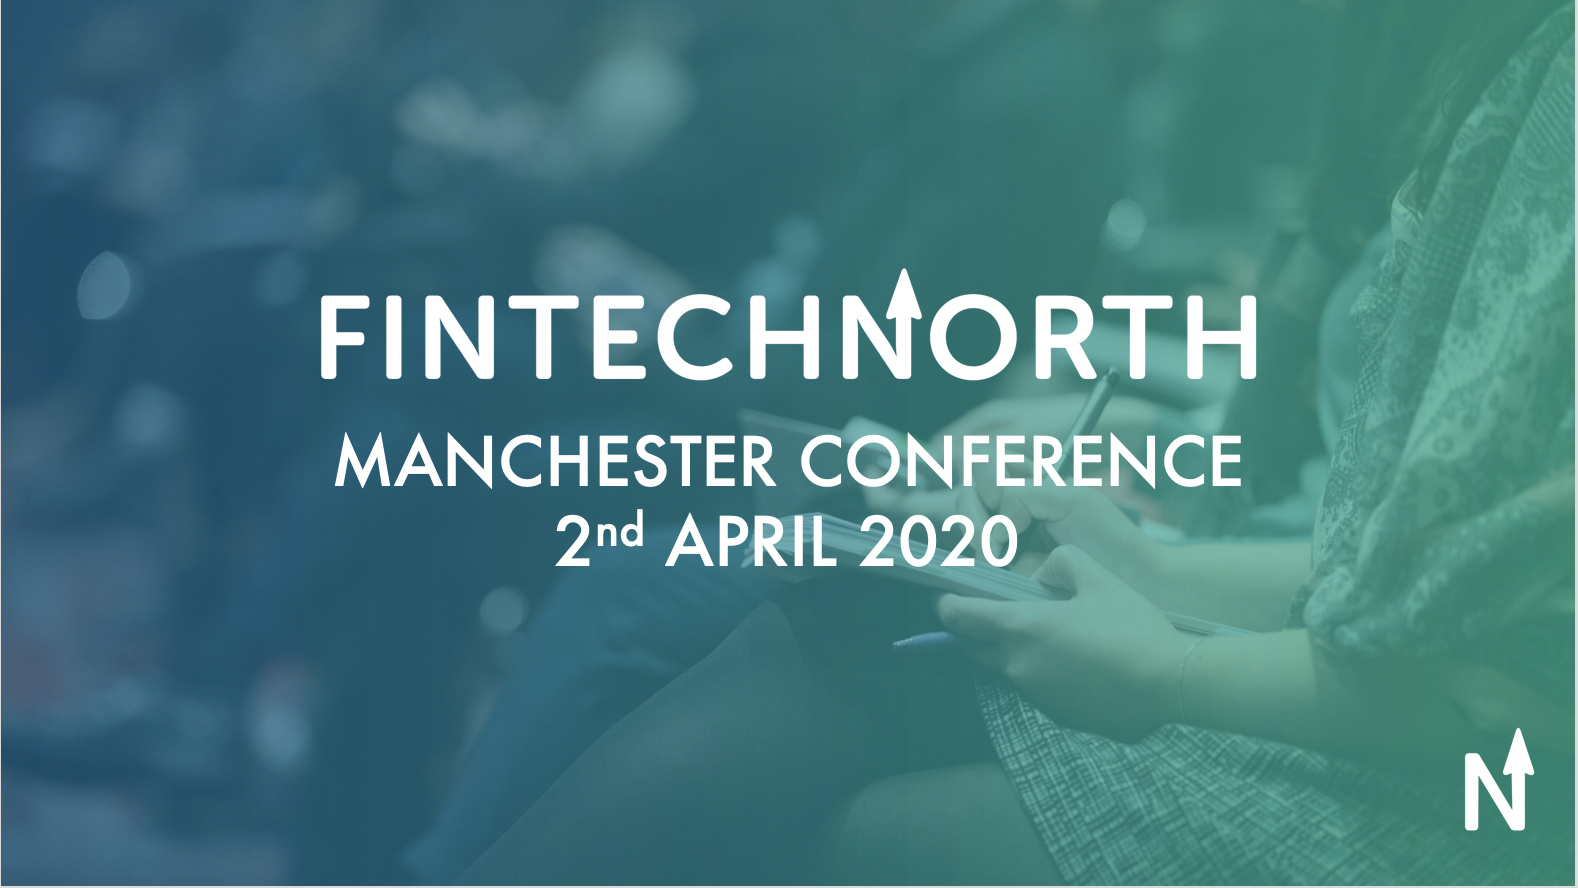 FinTech North Manchester Conference